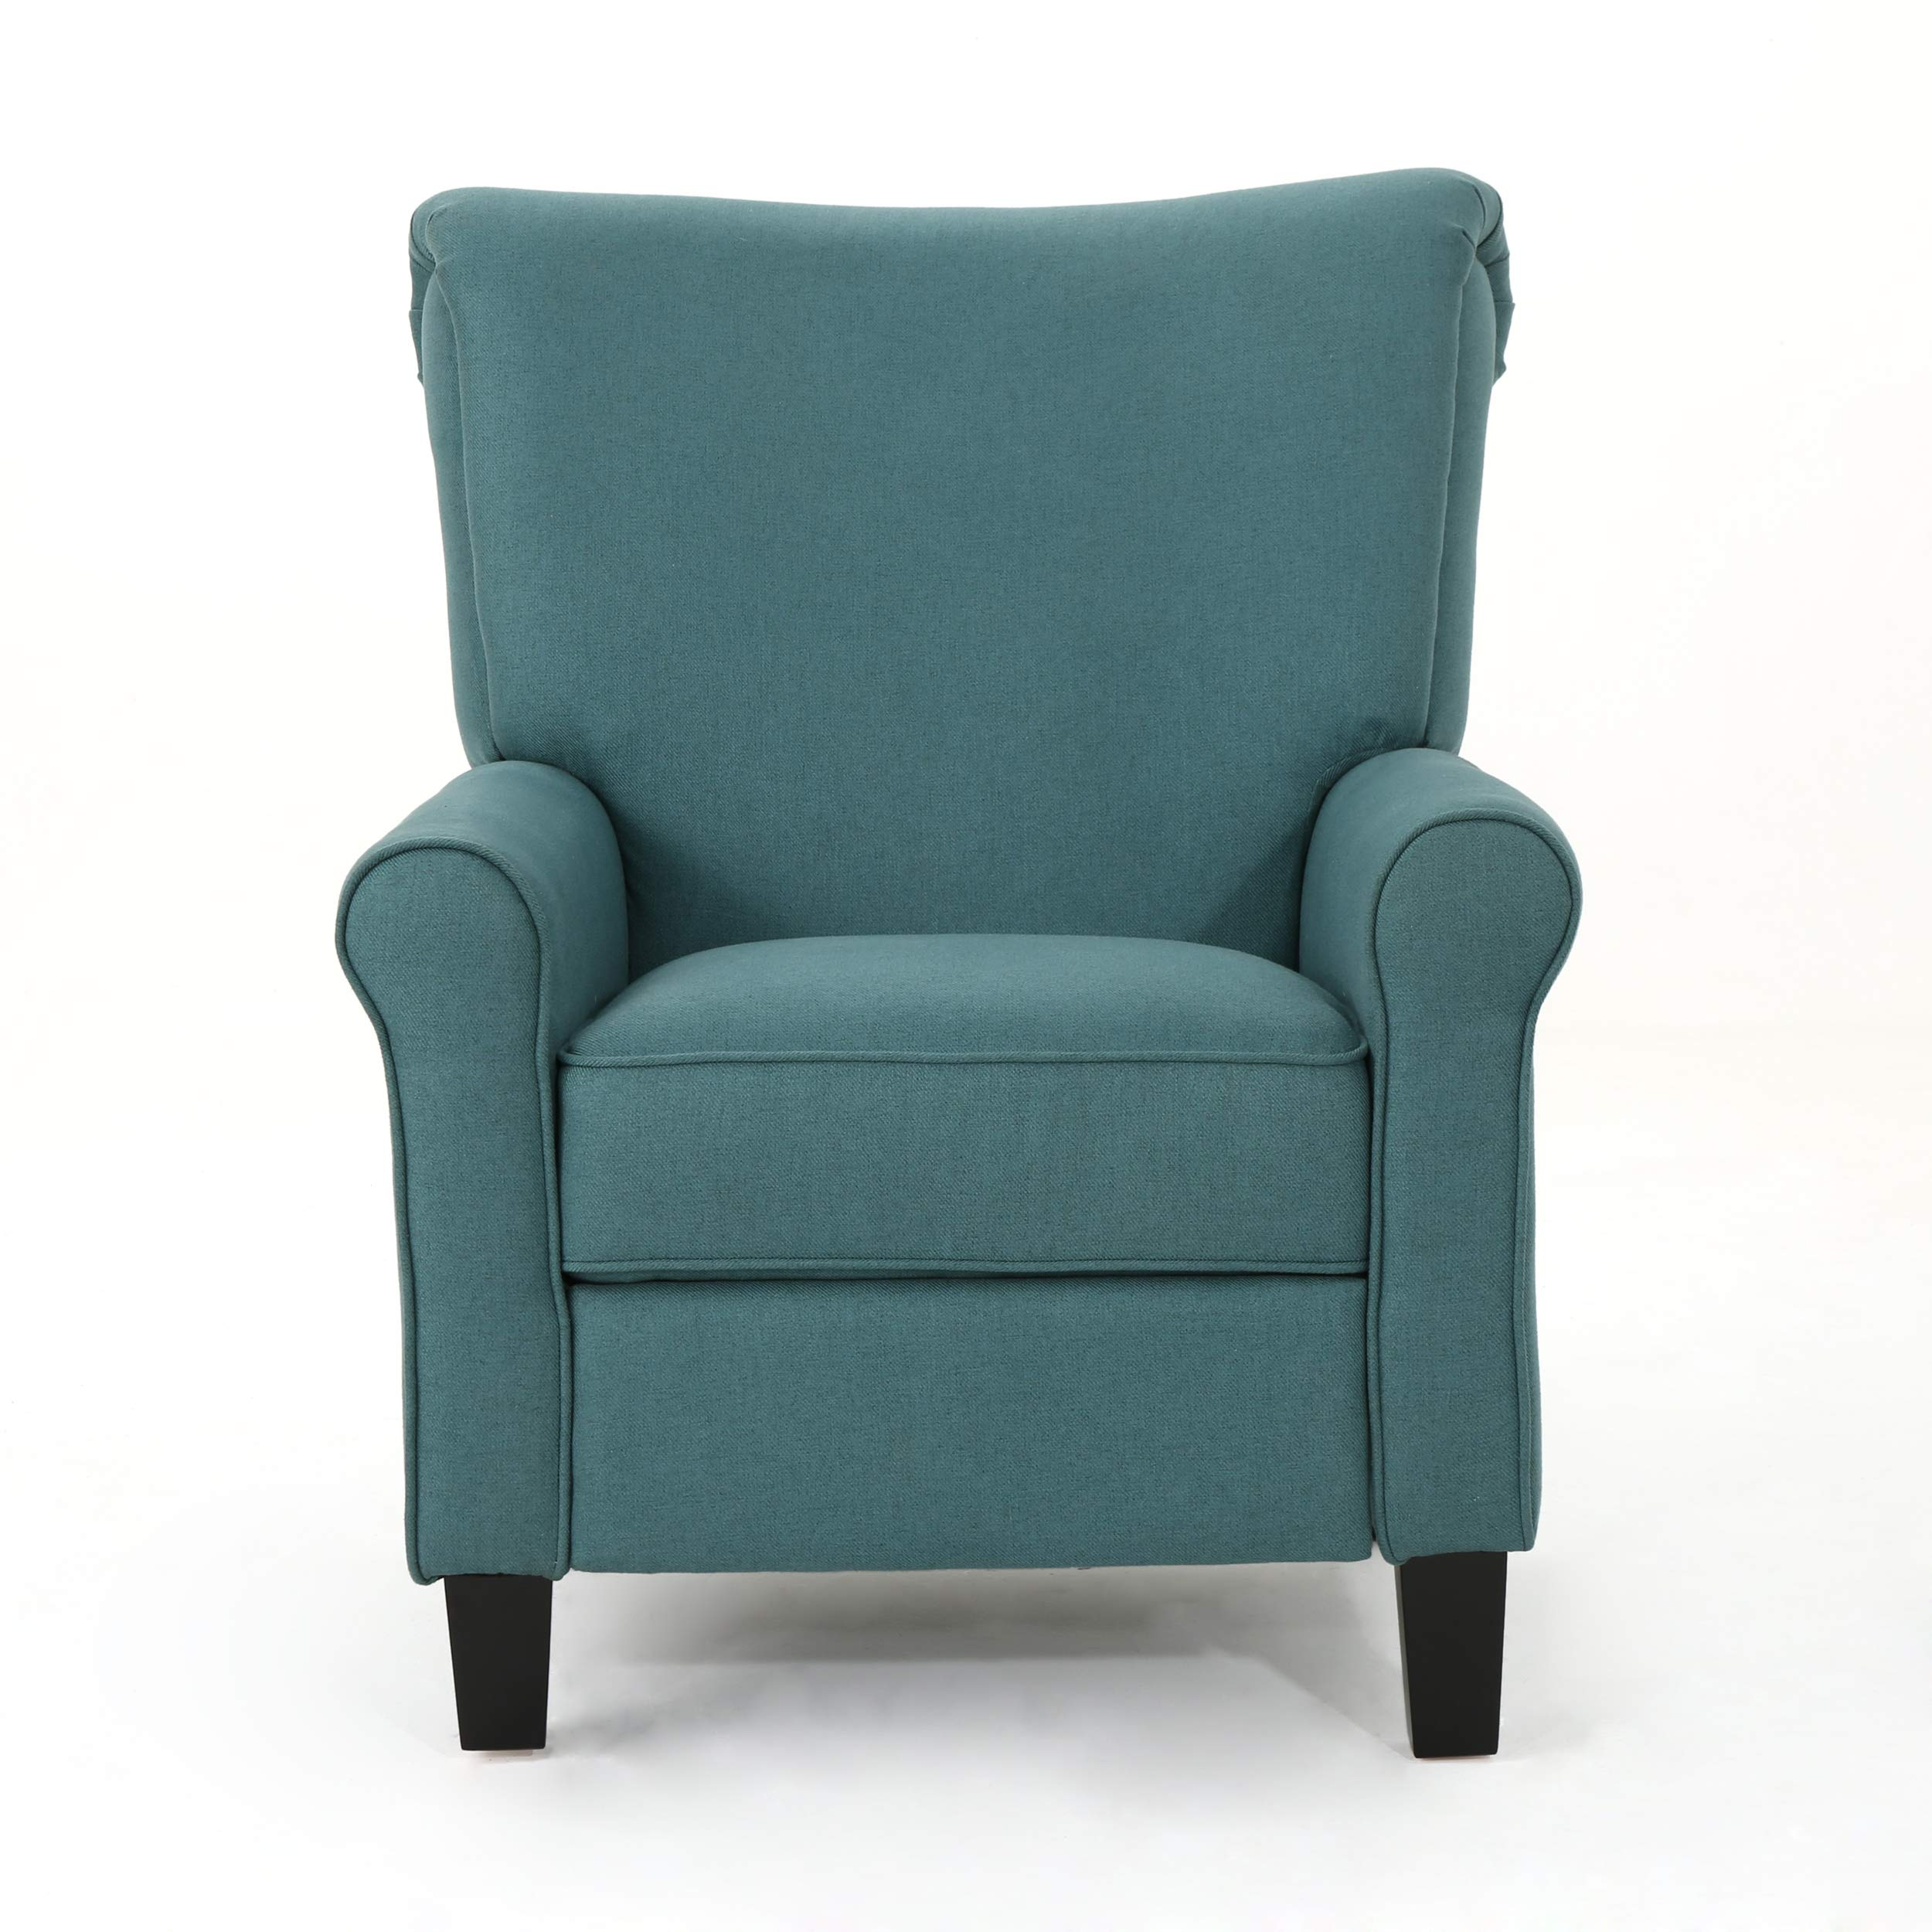 Christopher Knight Home Thalia Traditional Fabric Recliner, Dark Teal / Dark Brown